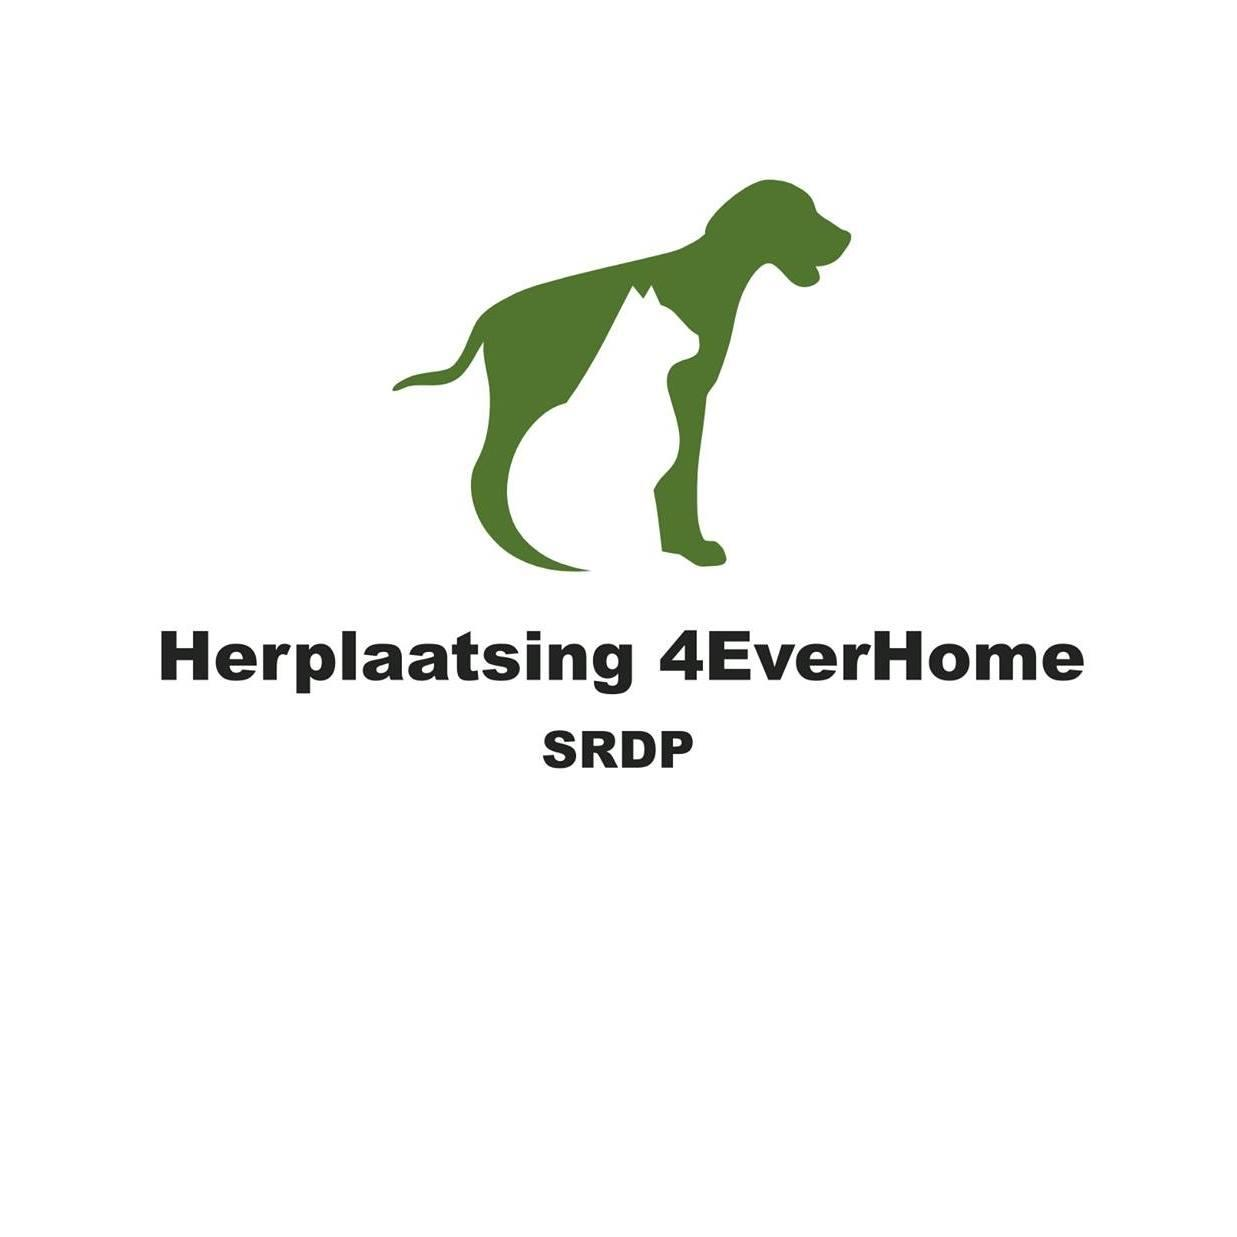 HERPLAATSING 4 EVER HOME (SRDP)